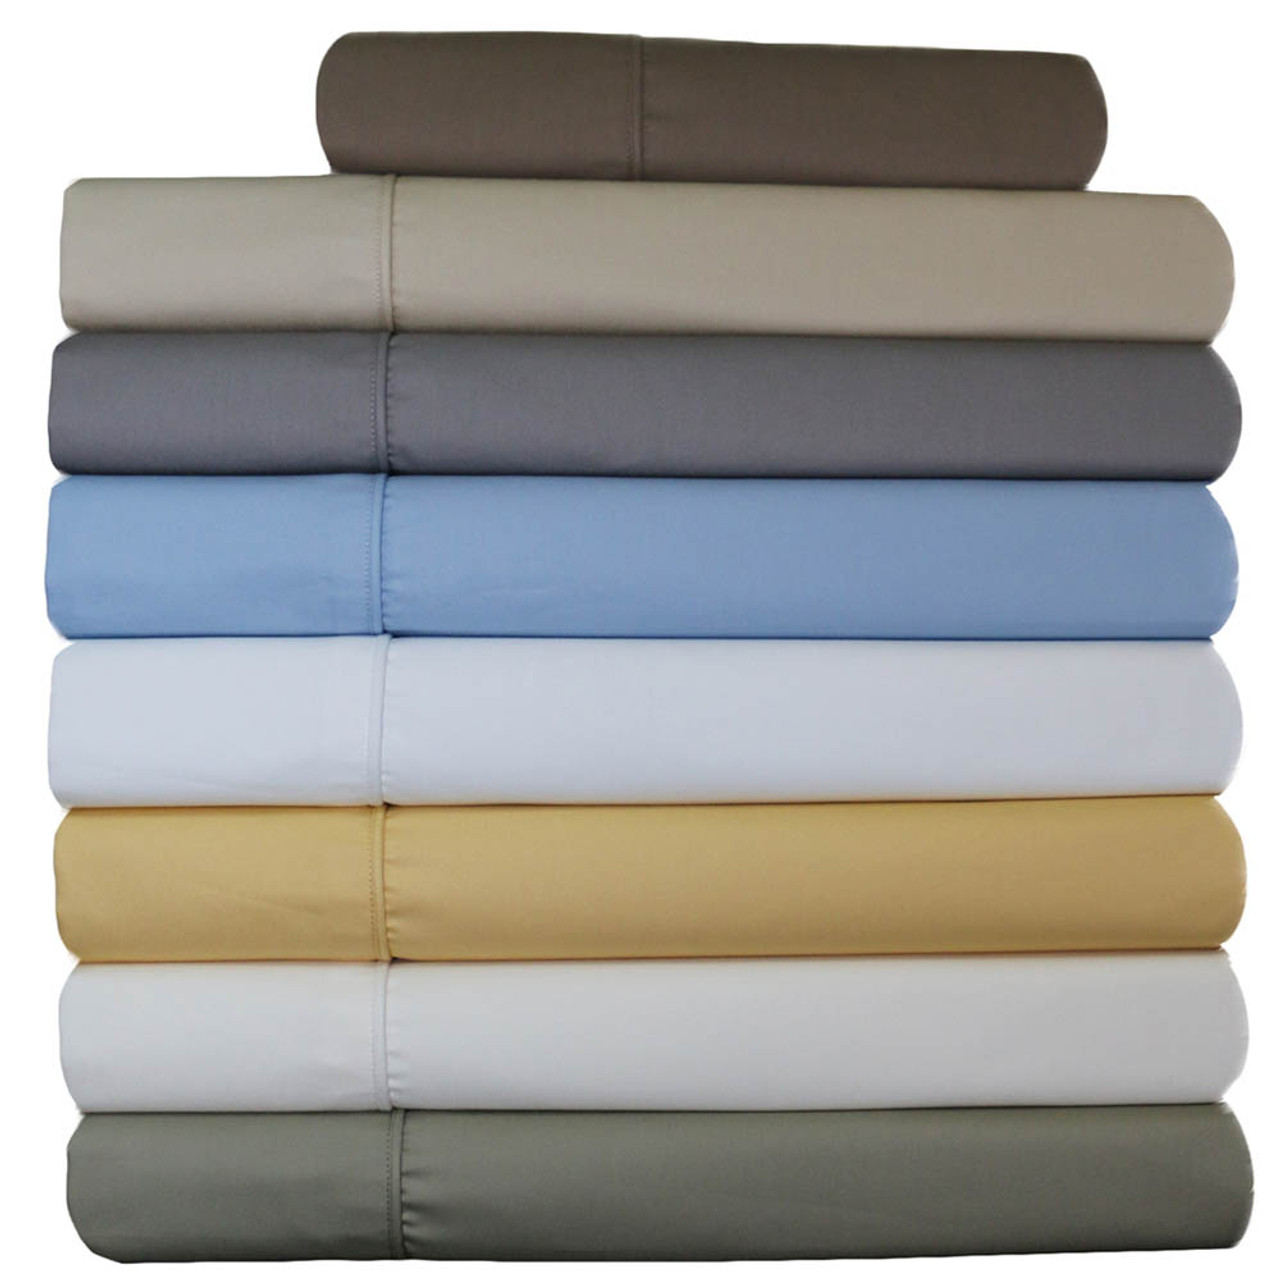 Deep Fitted Sheets Queen Size 22 Inch Deep Pocket Sheets Wrinkle Resistant Cotton Blend Bed Sheet Sets 650tc Solid